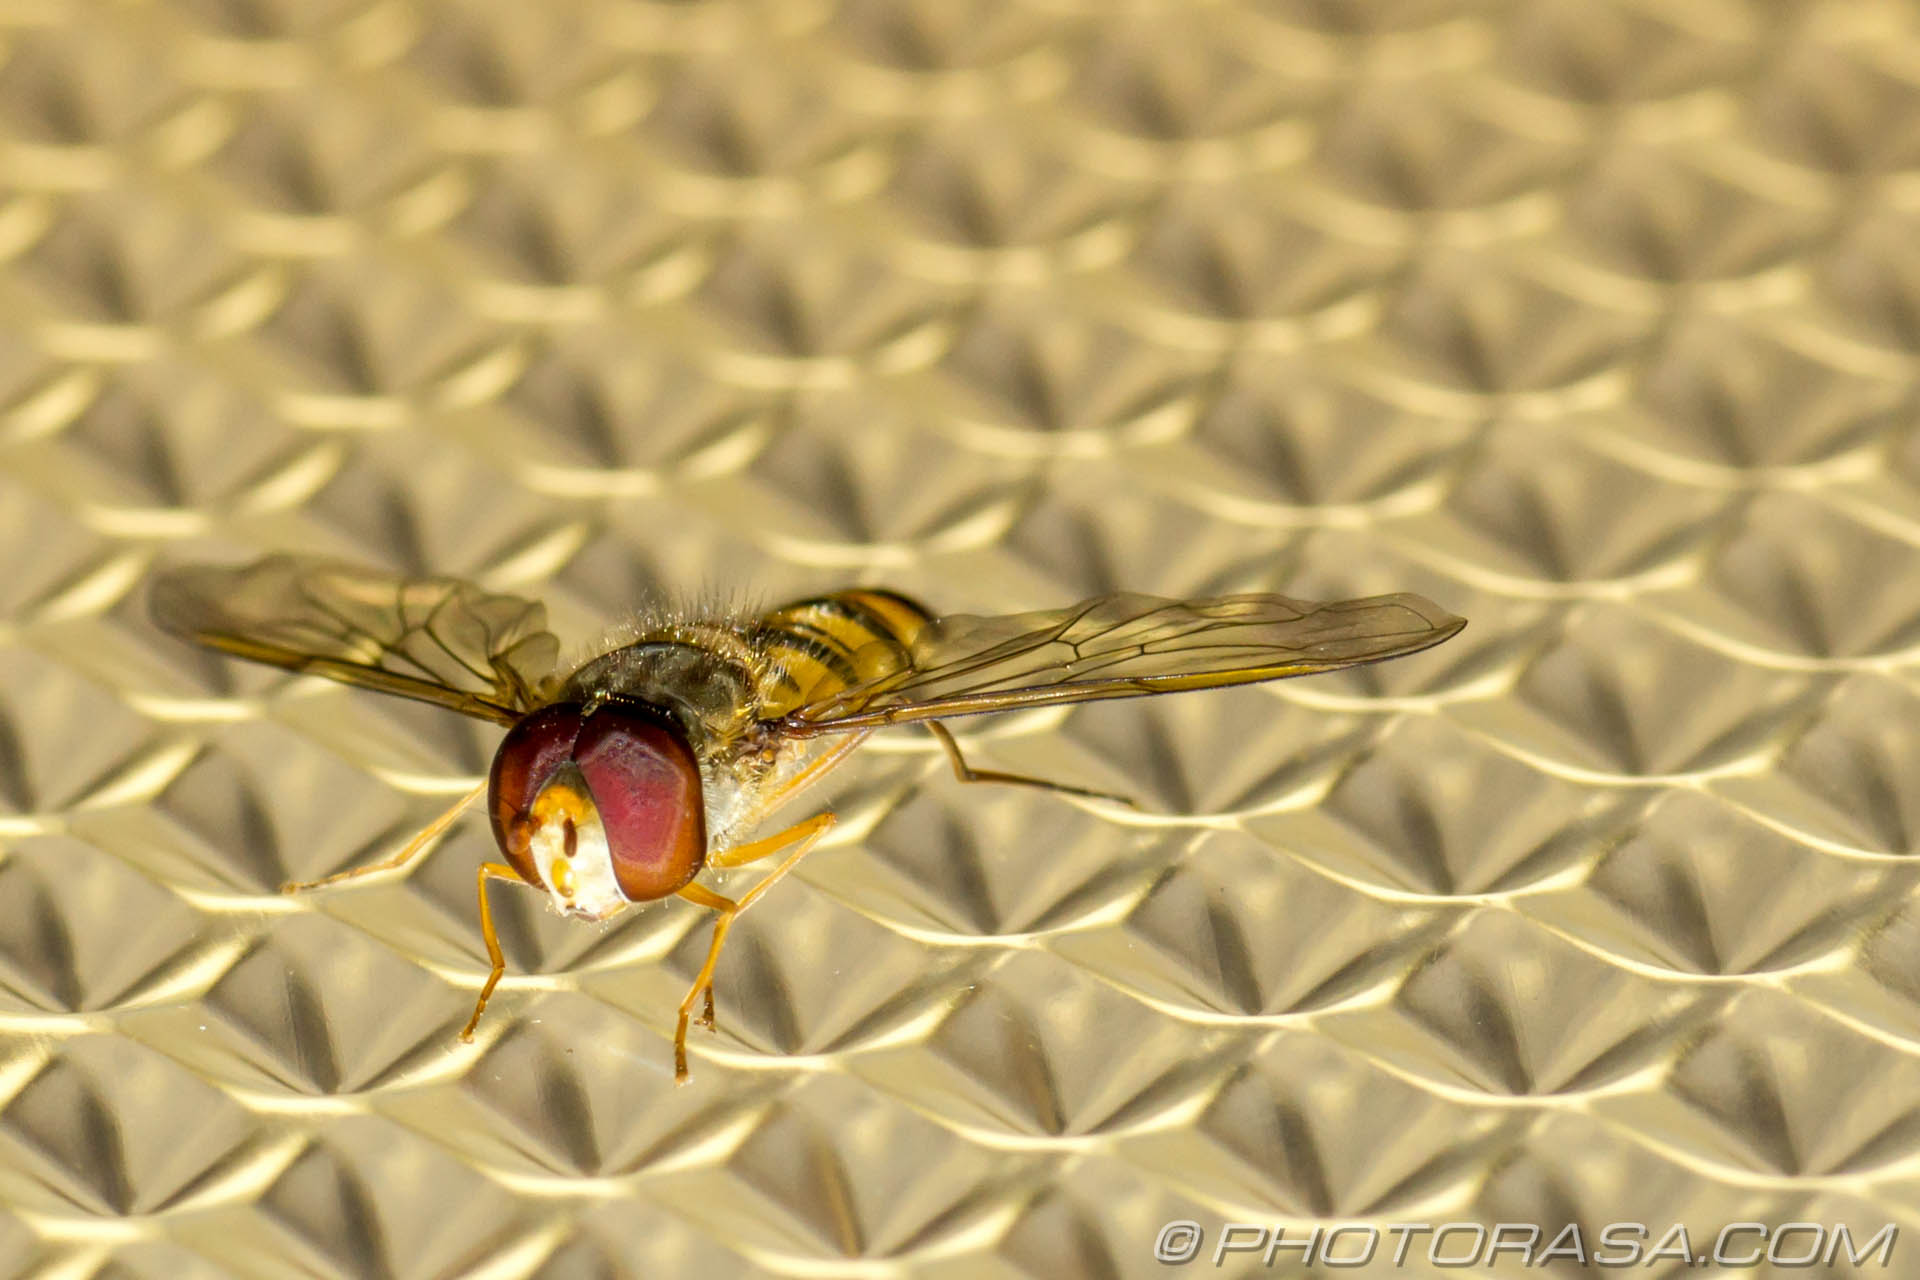 http://photorasa.com/hoverfly-light/fly-on-light-shade/